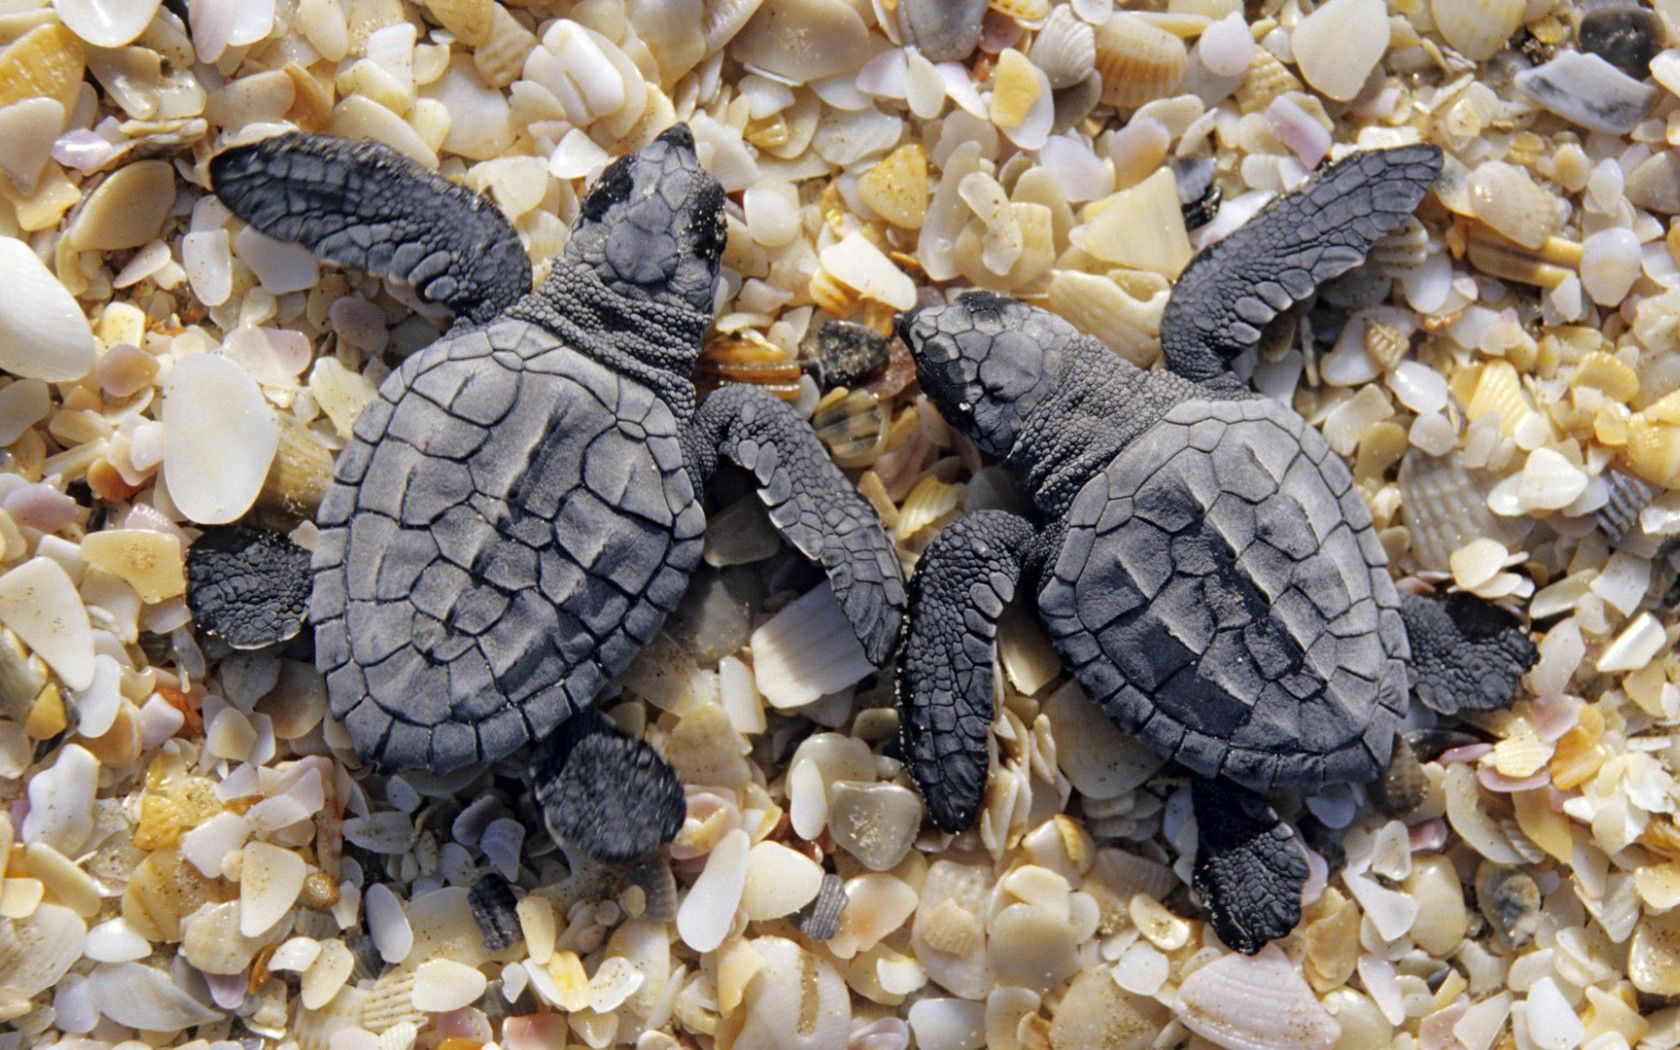 98903 download wallpaper Animals, Turtles, Shells, Shore, Bank, Small, Two screensavers and pictures for free